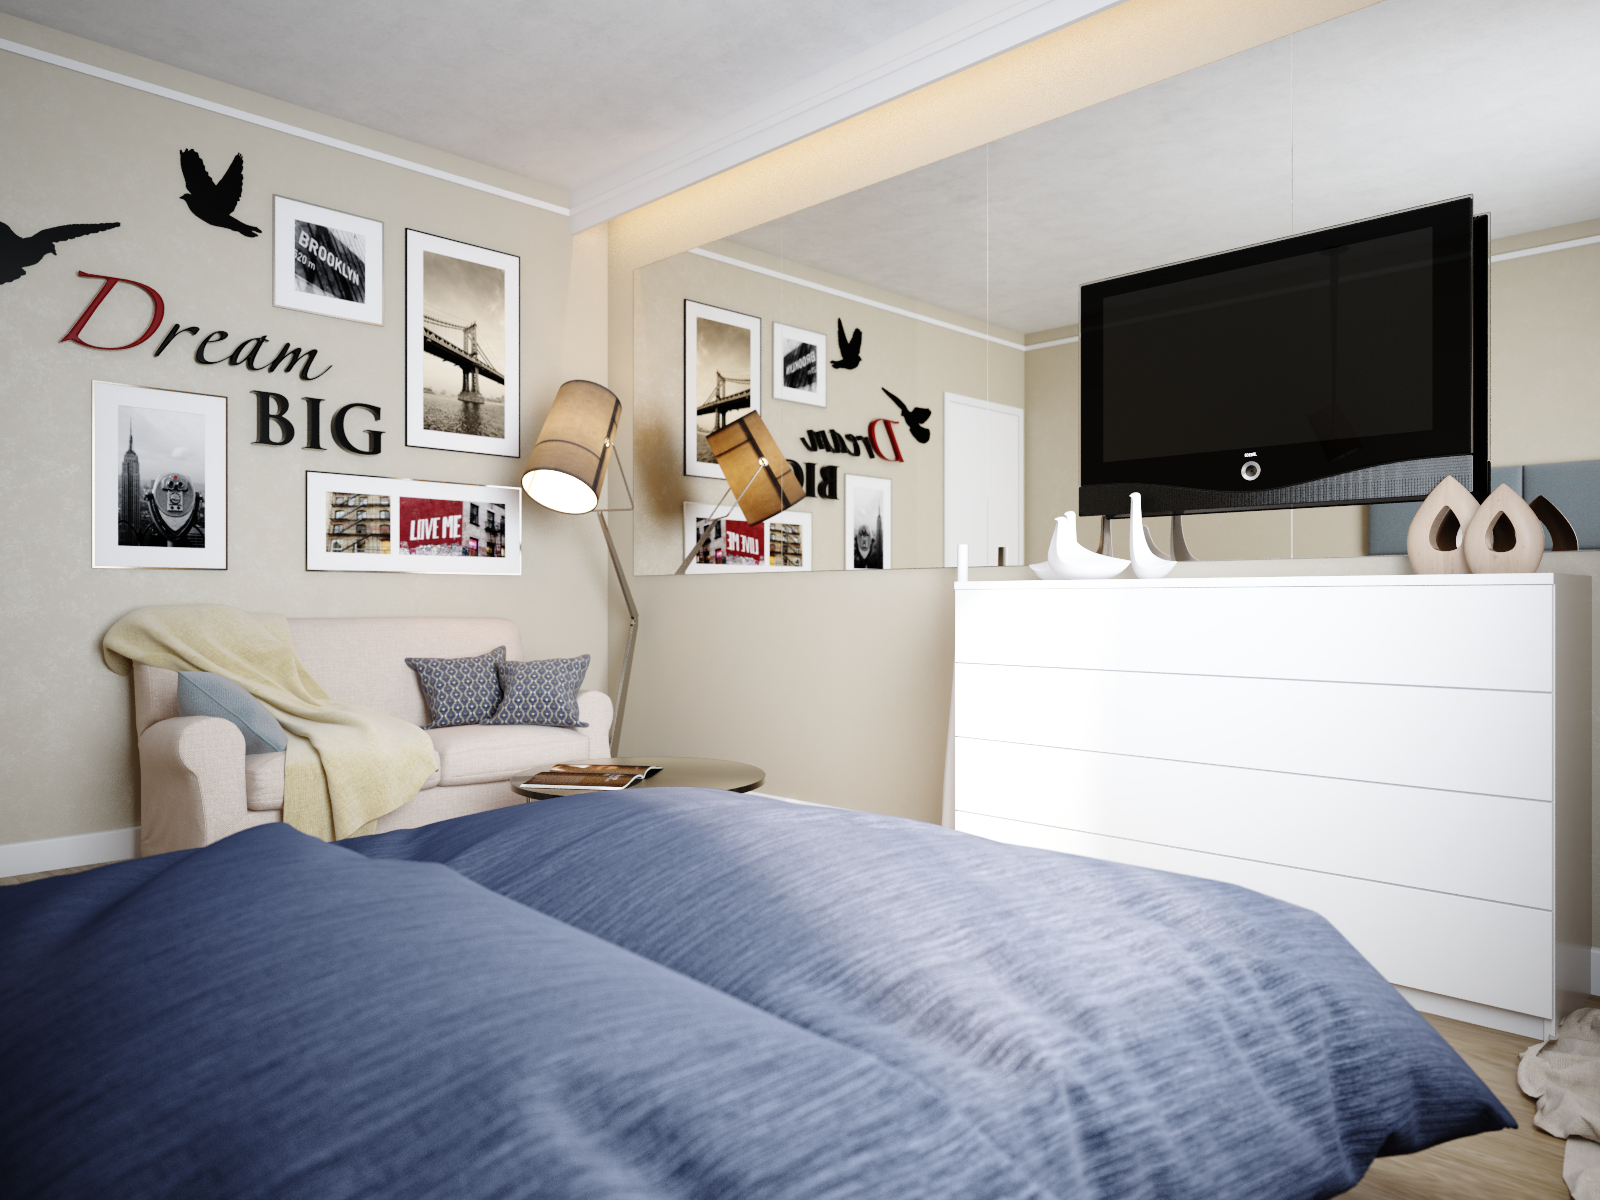 A Small Apartment With Big Dreams - A small apartment with big dreams